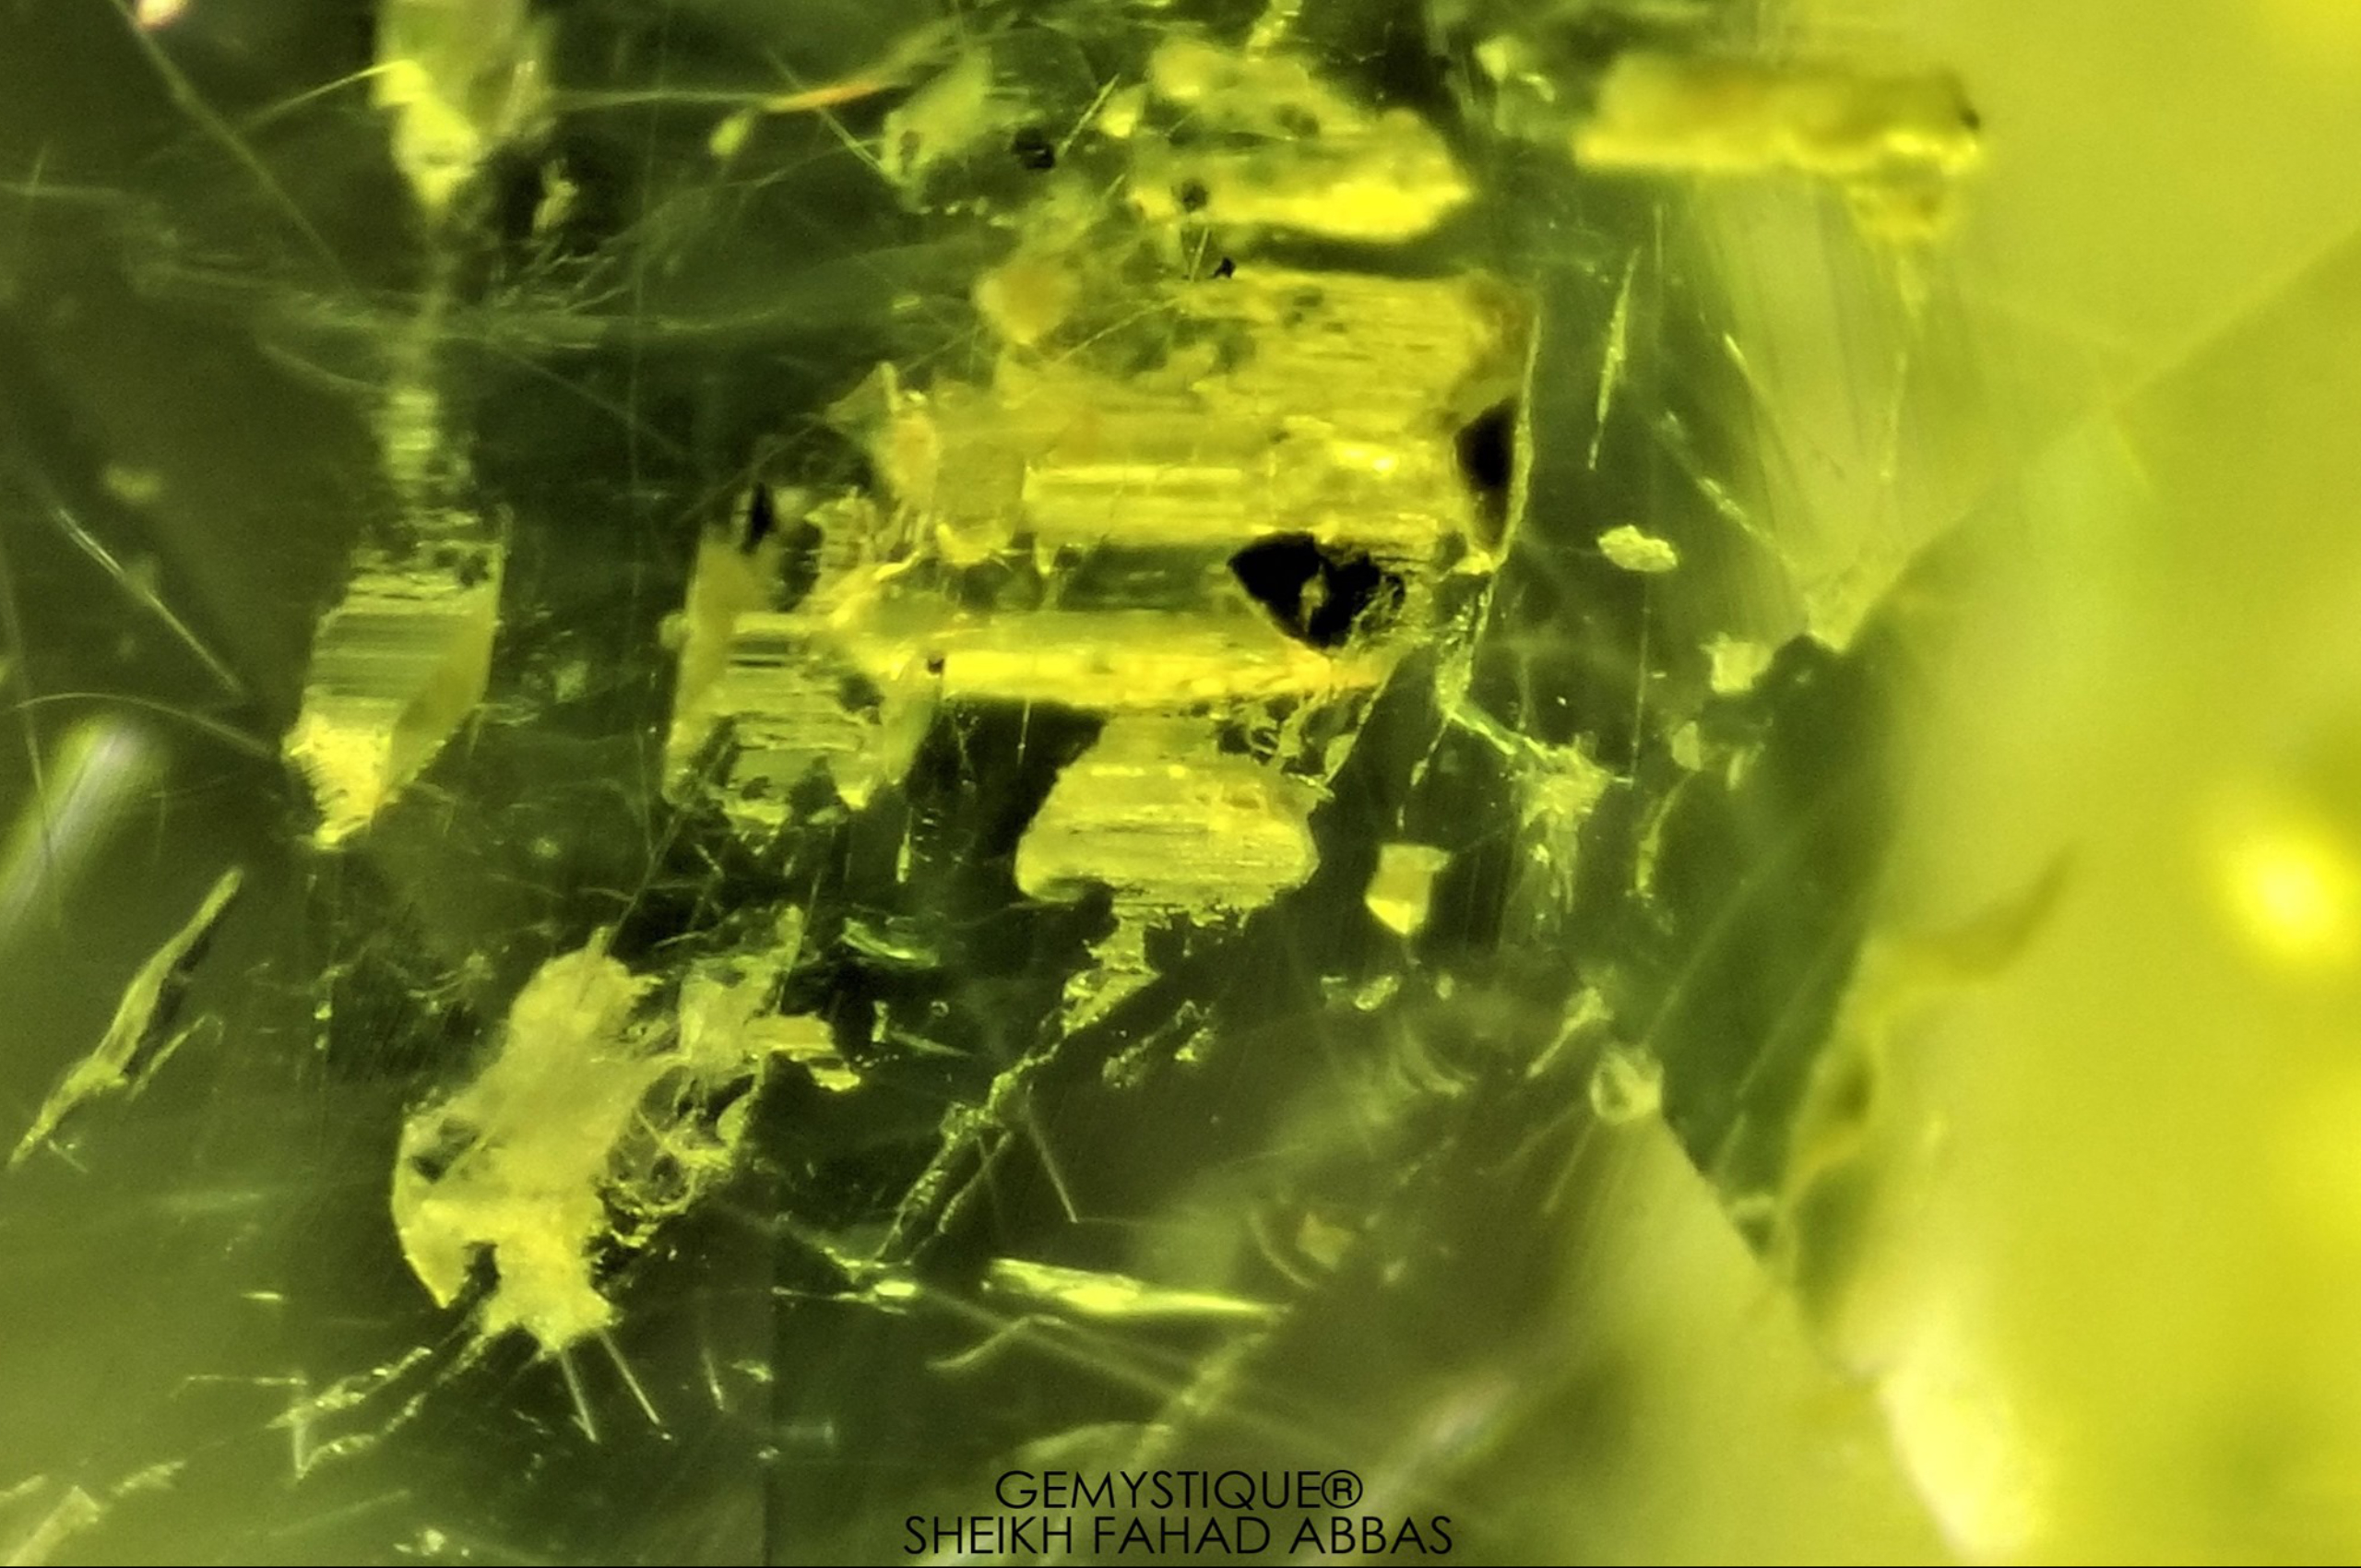 Black crystals, liquid inclusions and negative crystals in Peridot from Supat Valley in Pakistan. Photo by Sheikh Fahad Abbas